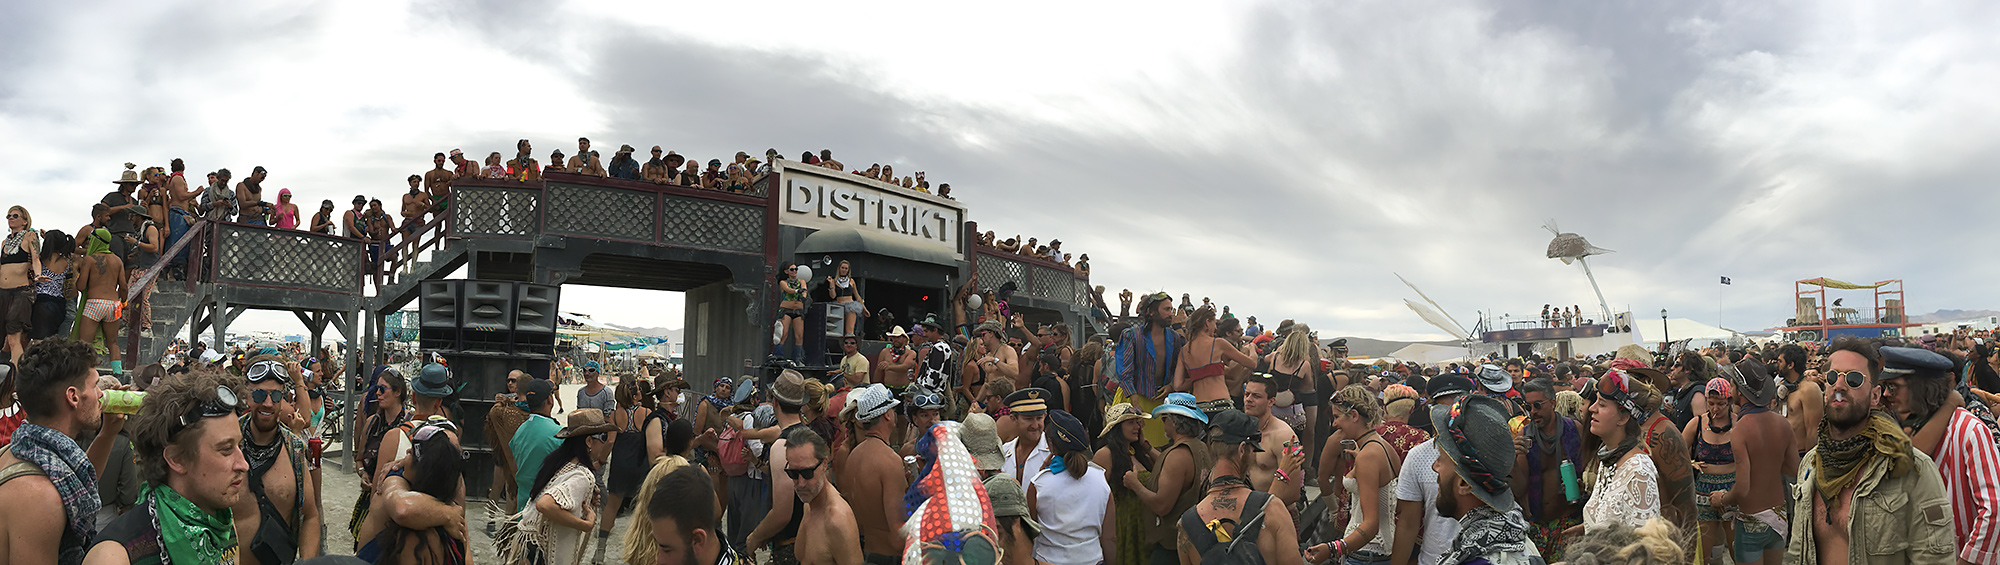 DISTRIKT, the mecca of sunset dance parties.